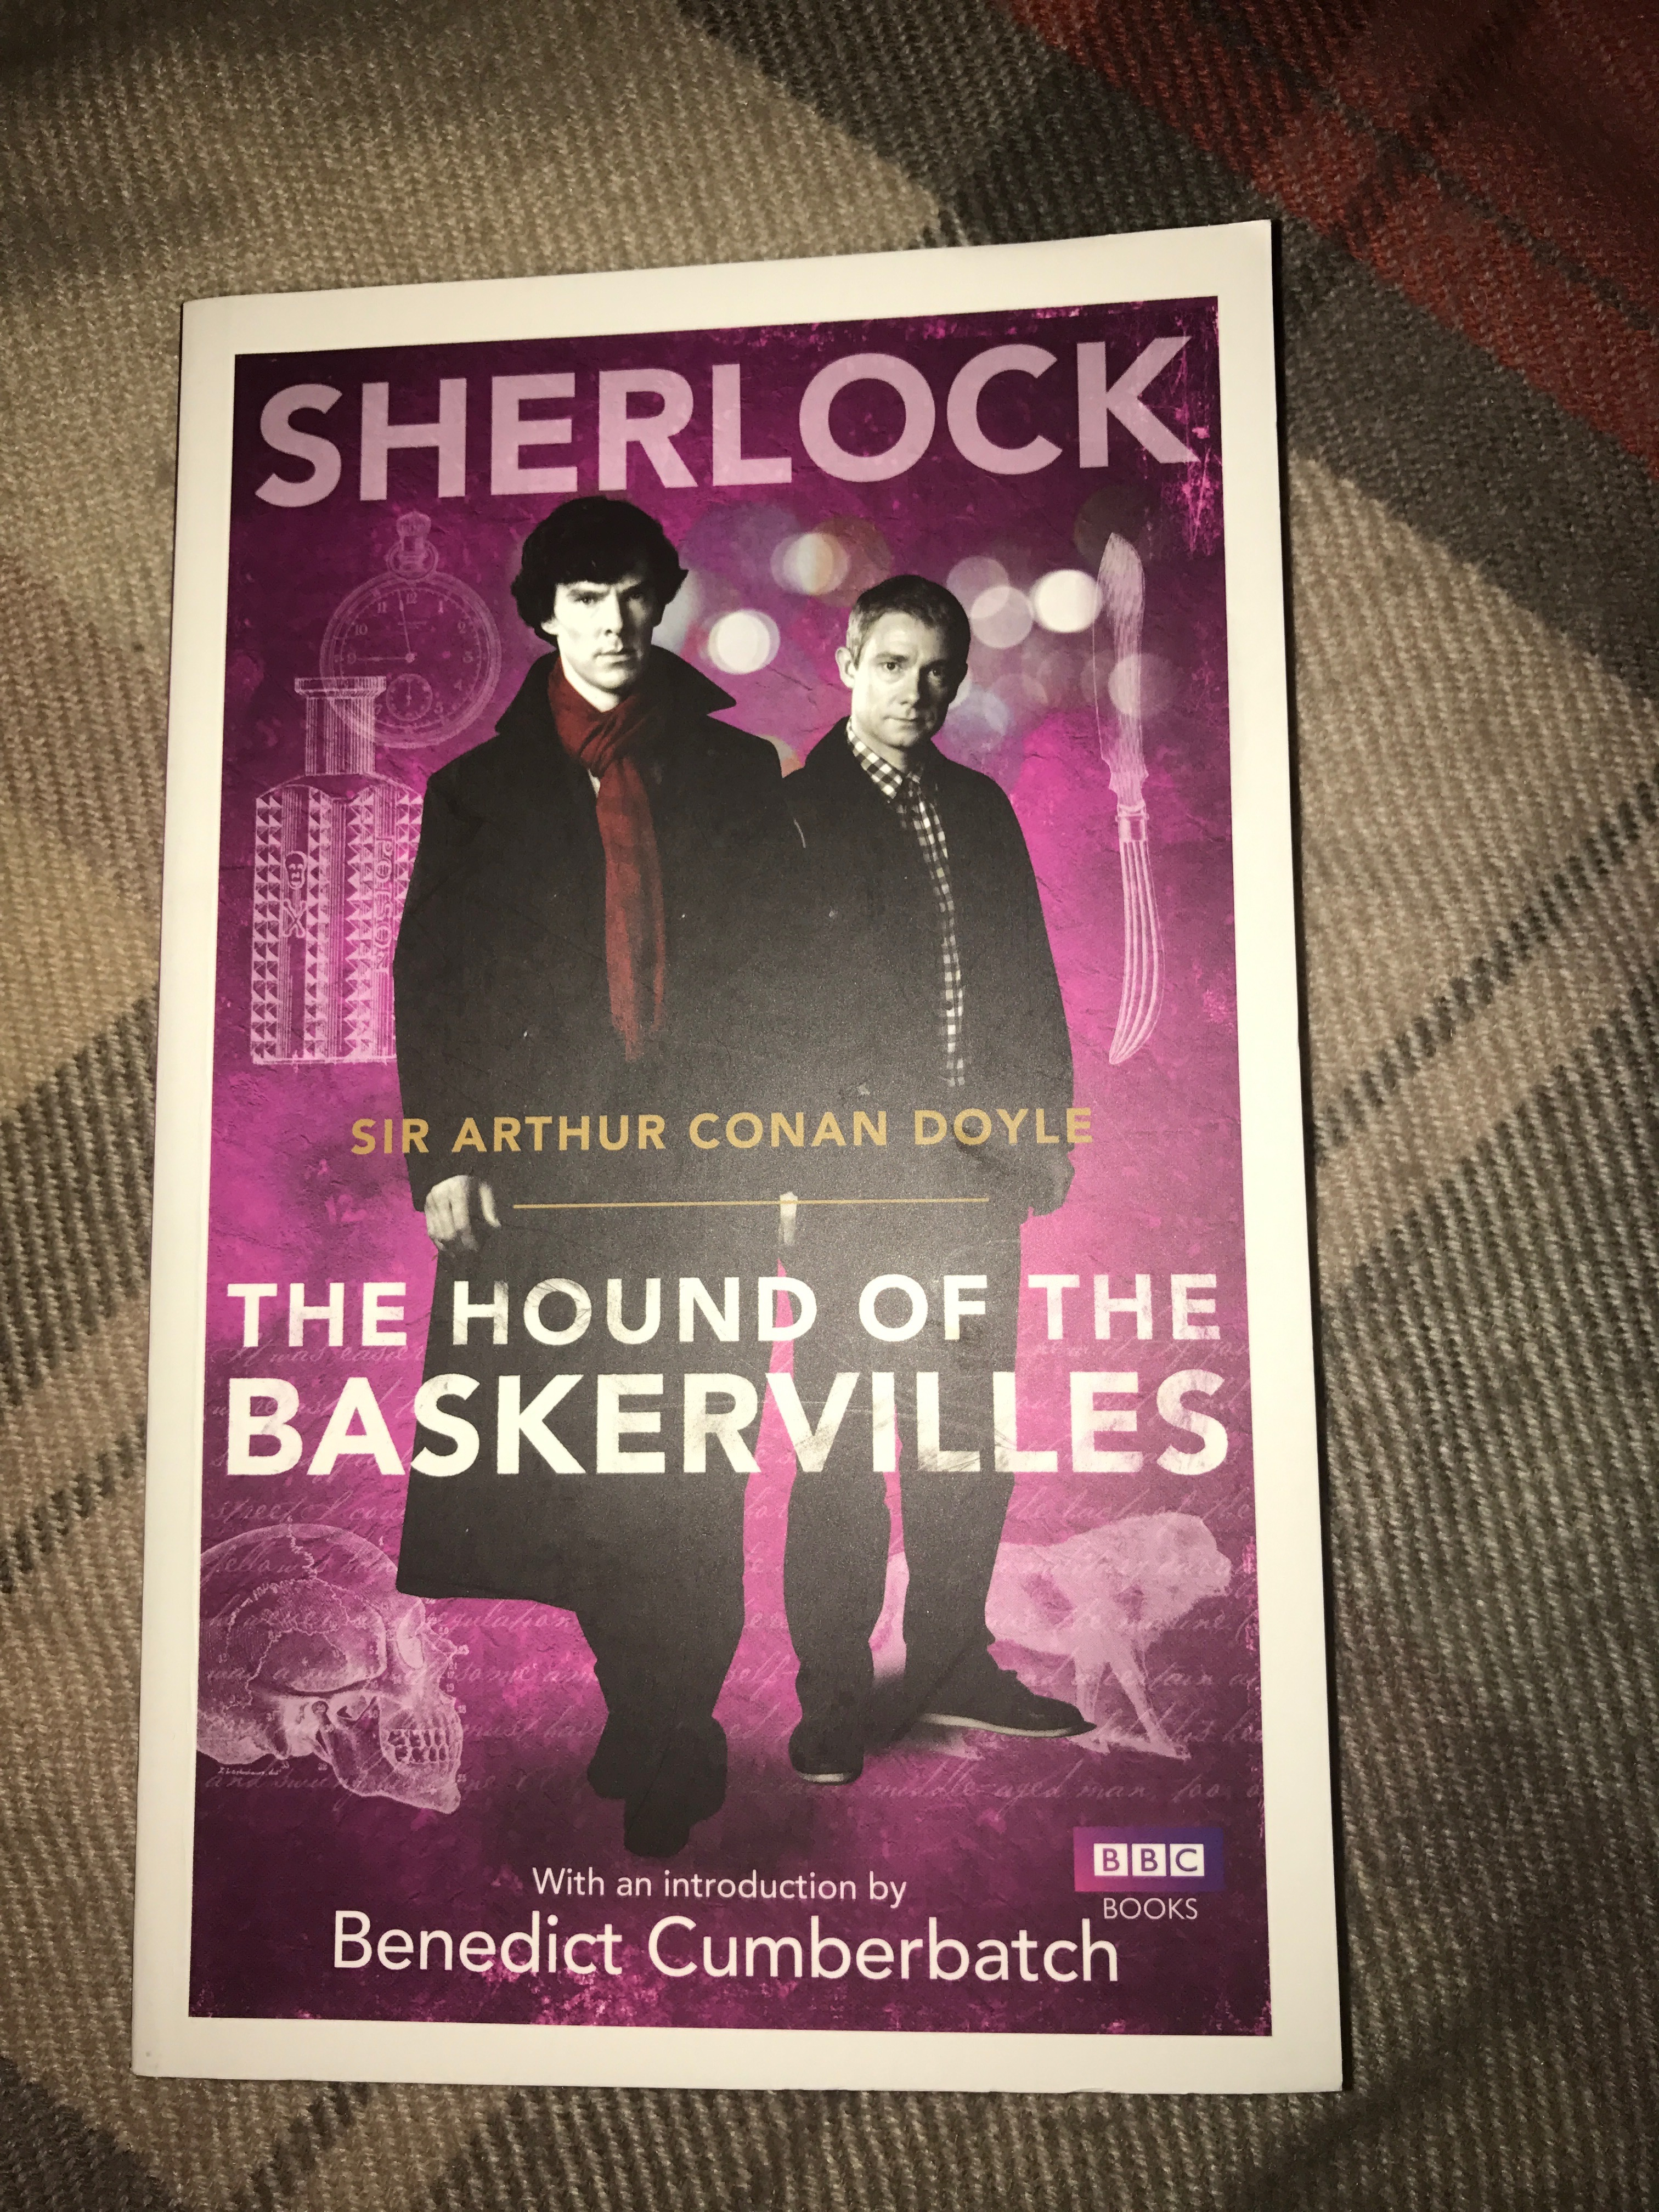 the hound of the baskervilles by arthur conan doyle essay The hound of the baskervilles  • join now to read essay the hound of the baskervilles and other term  of the baskervillessir arthur conan doyle first.